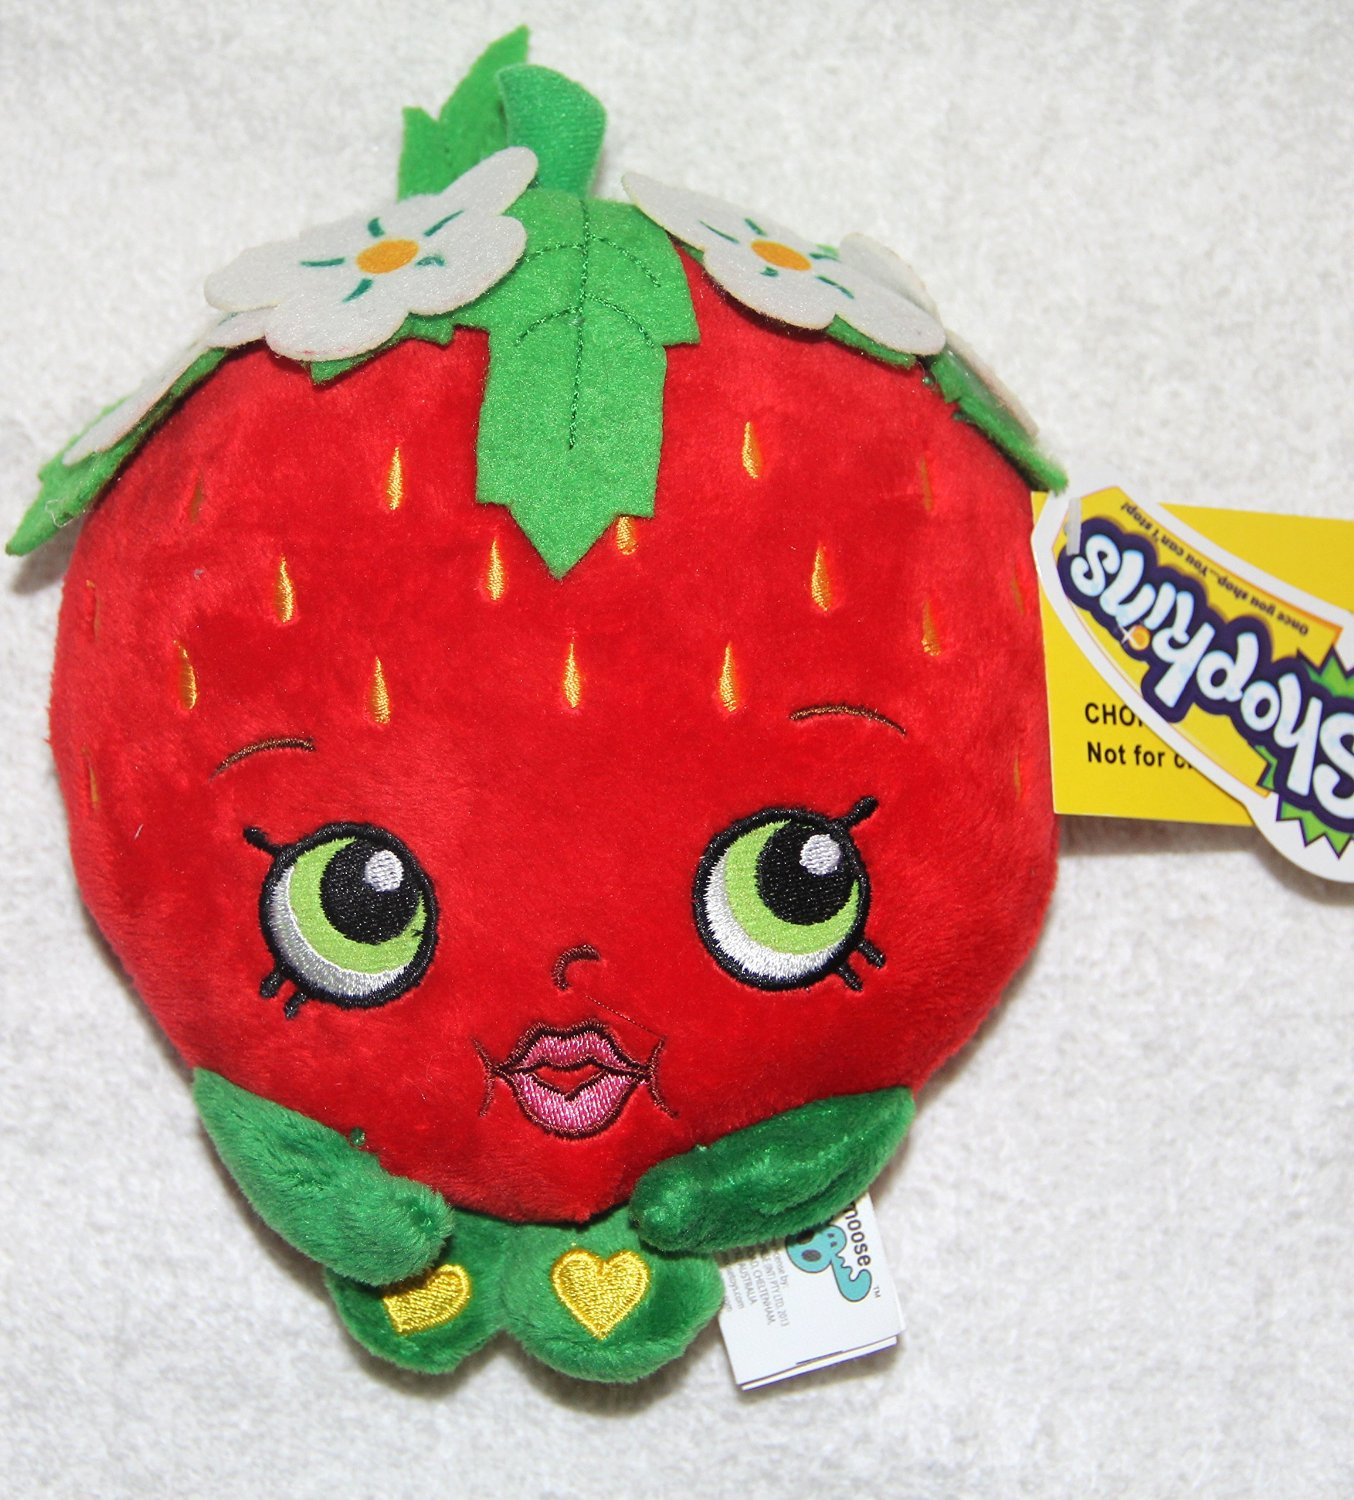 "Plush - Shopkins - Strawberry 6.5"" Soft Doll Toys New 149723"